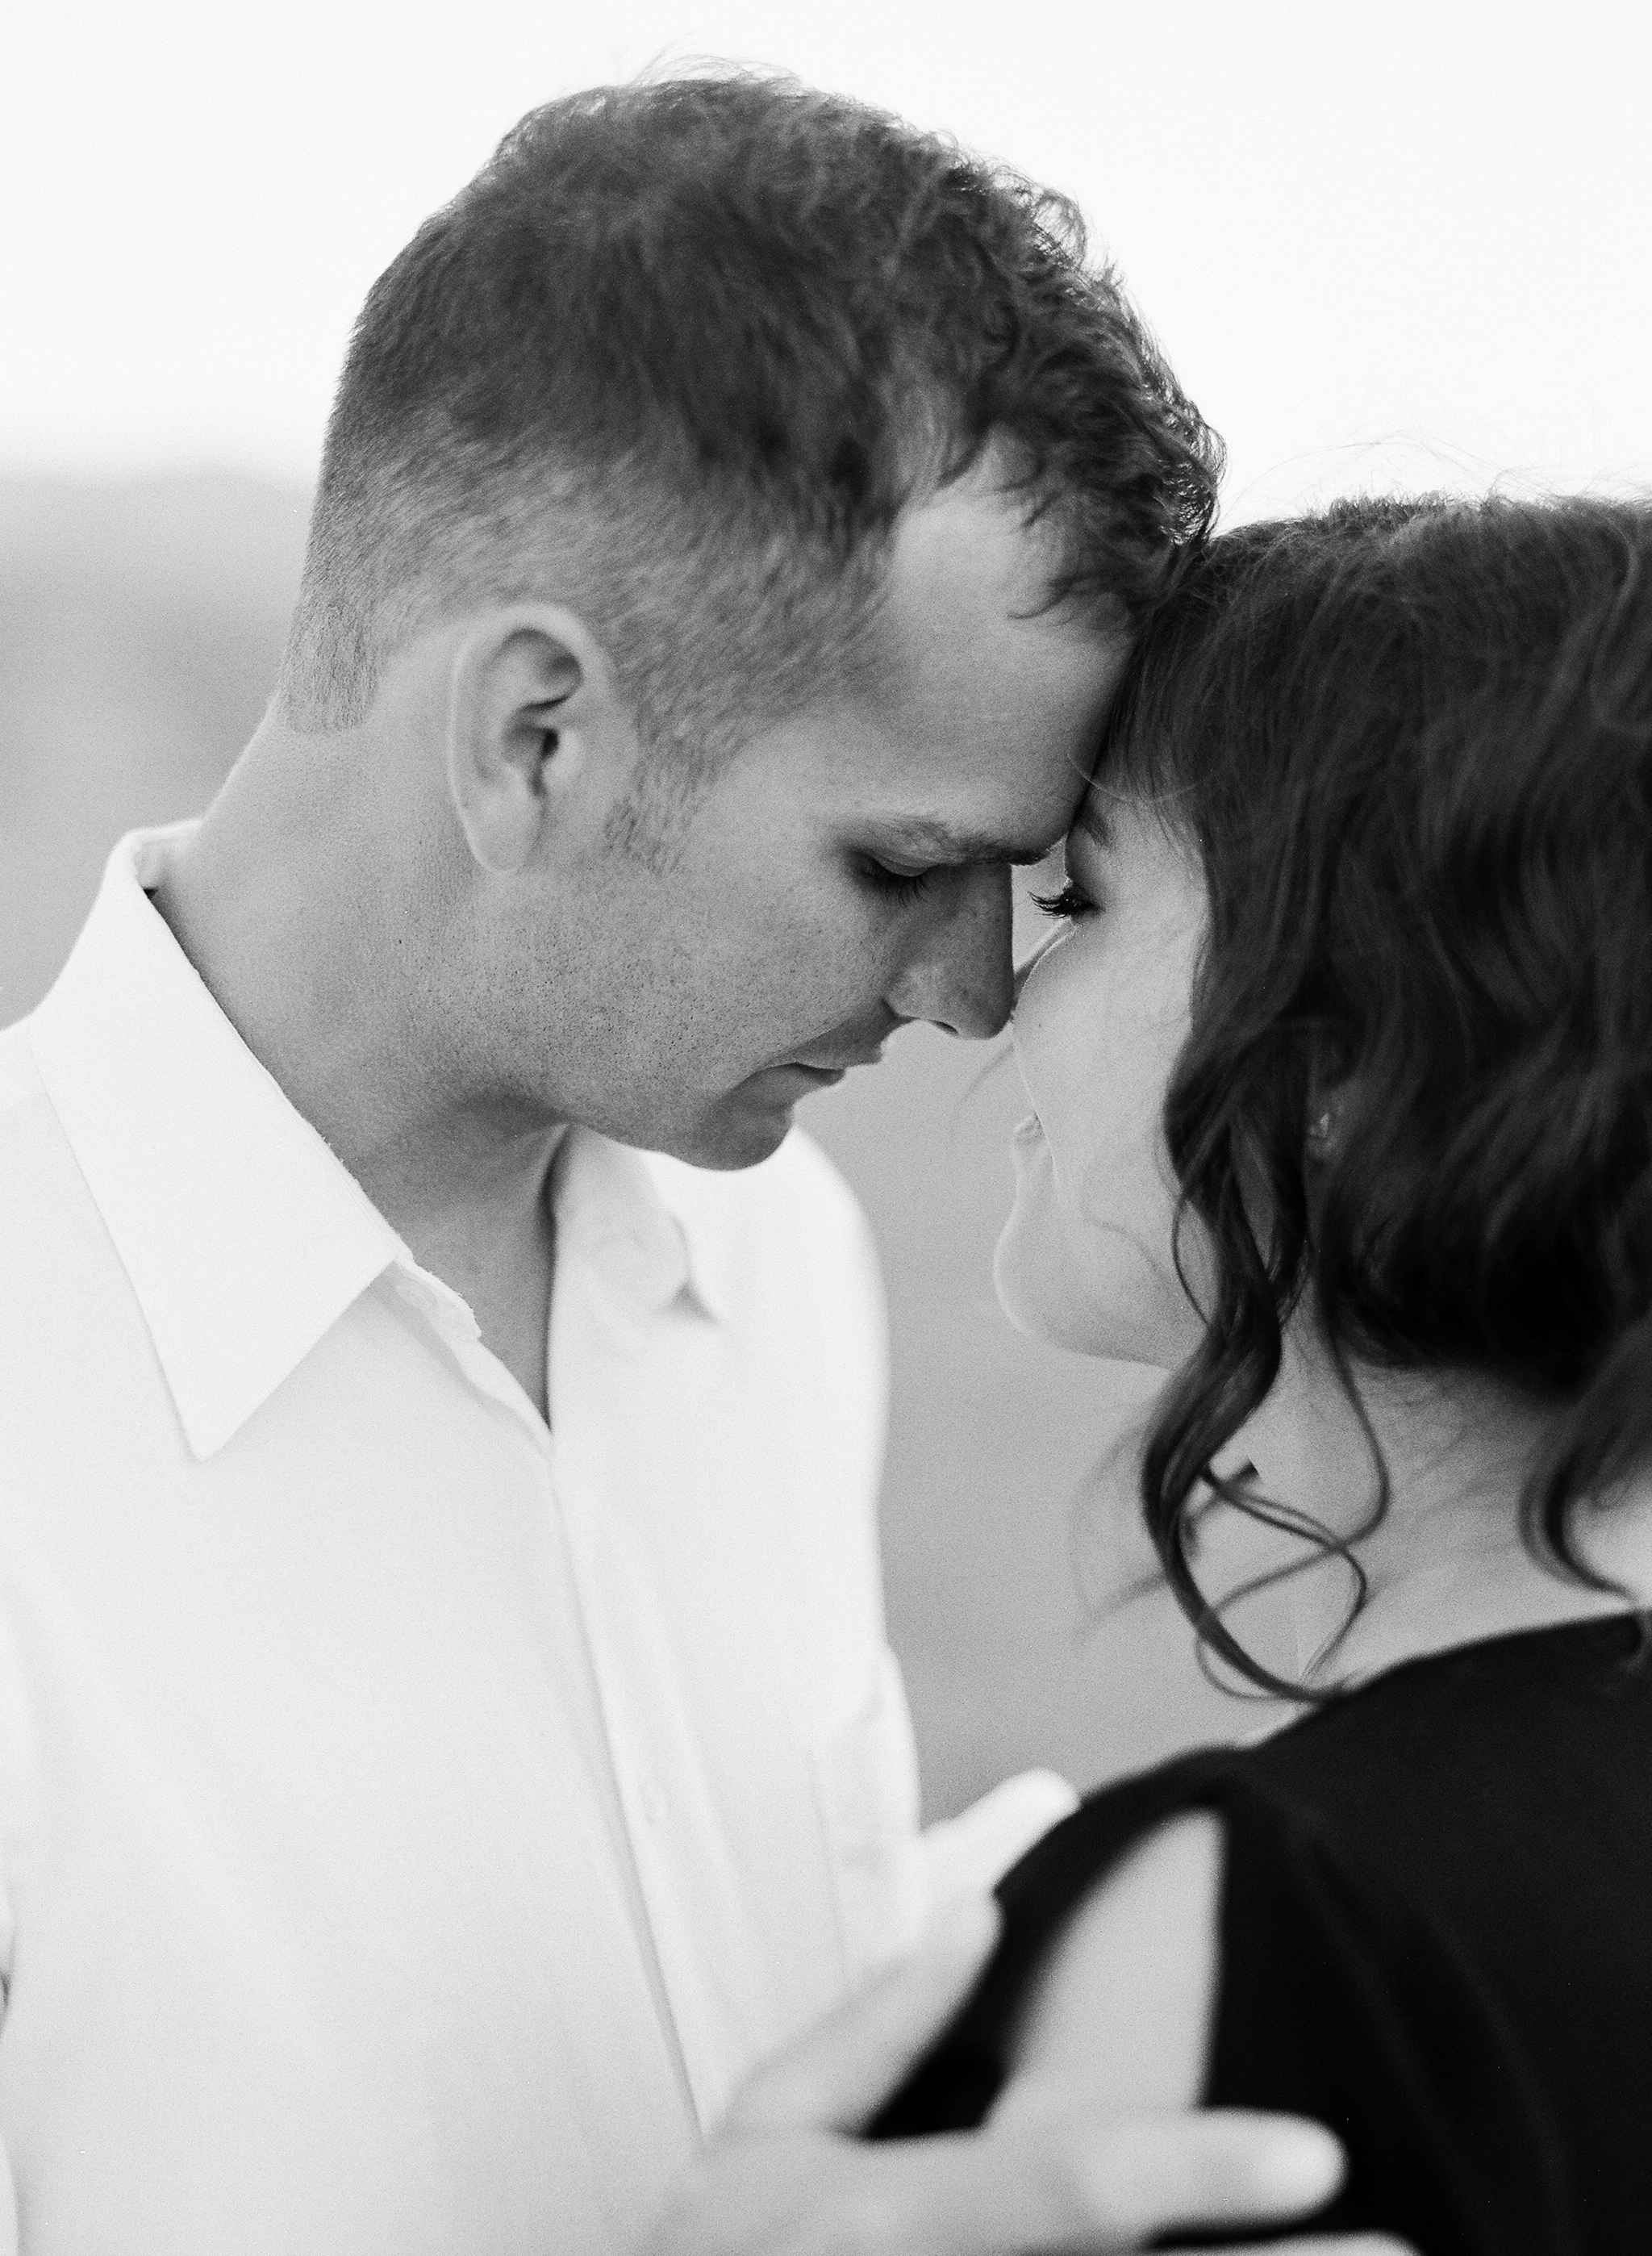 blake_alyssa_engagement-8.jpg